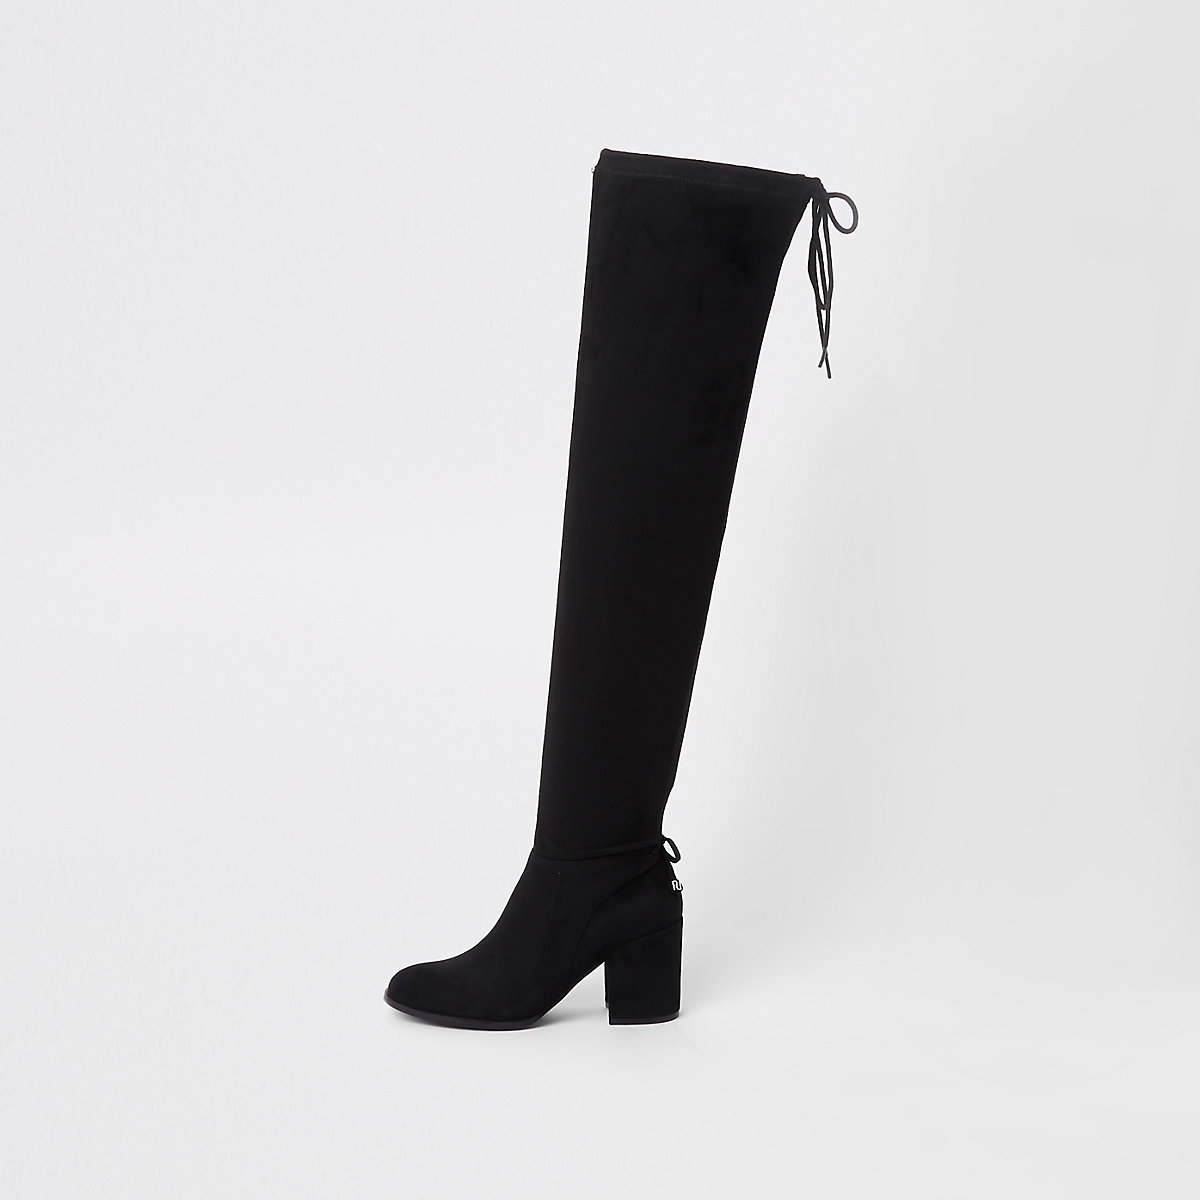 Black faux suede over the knee boots - Boots - Shoes   Boots - women 1993d0b83